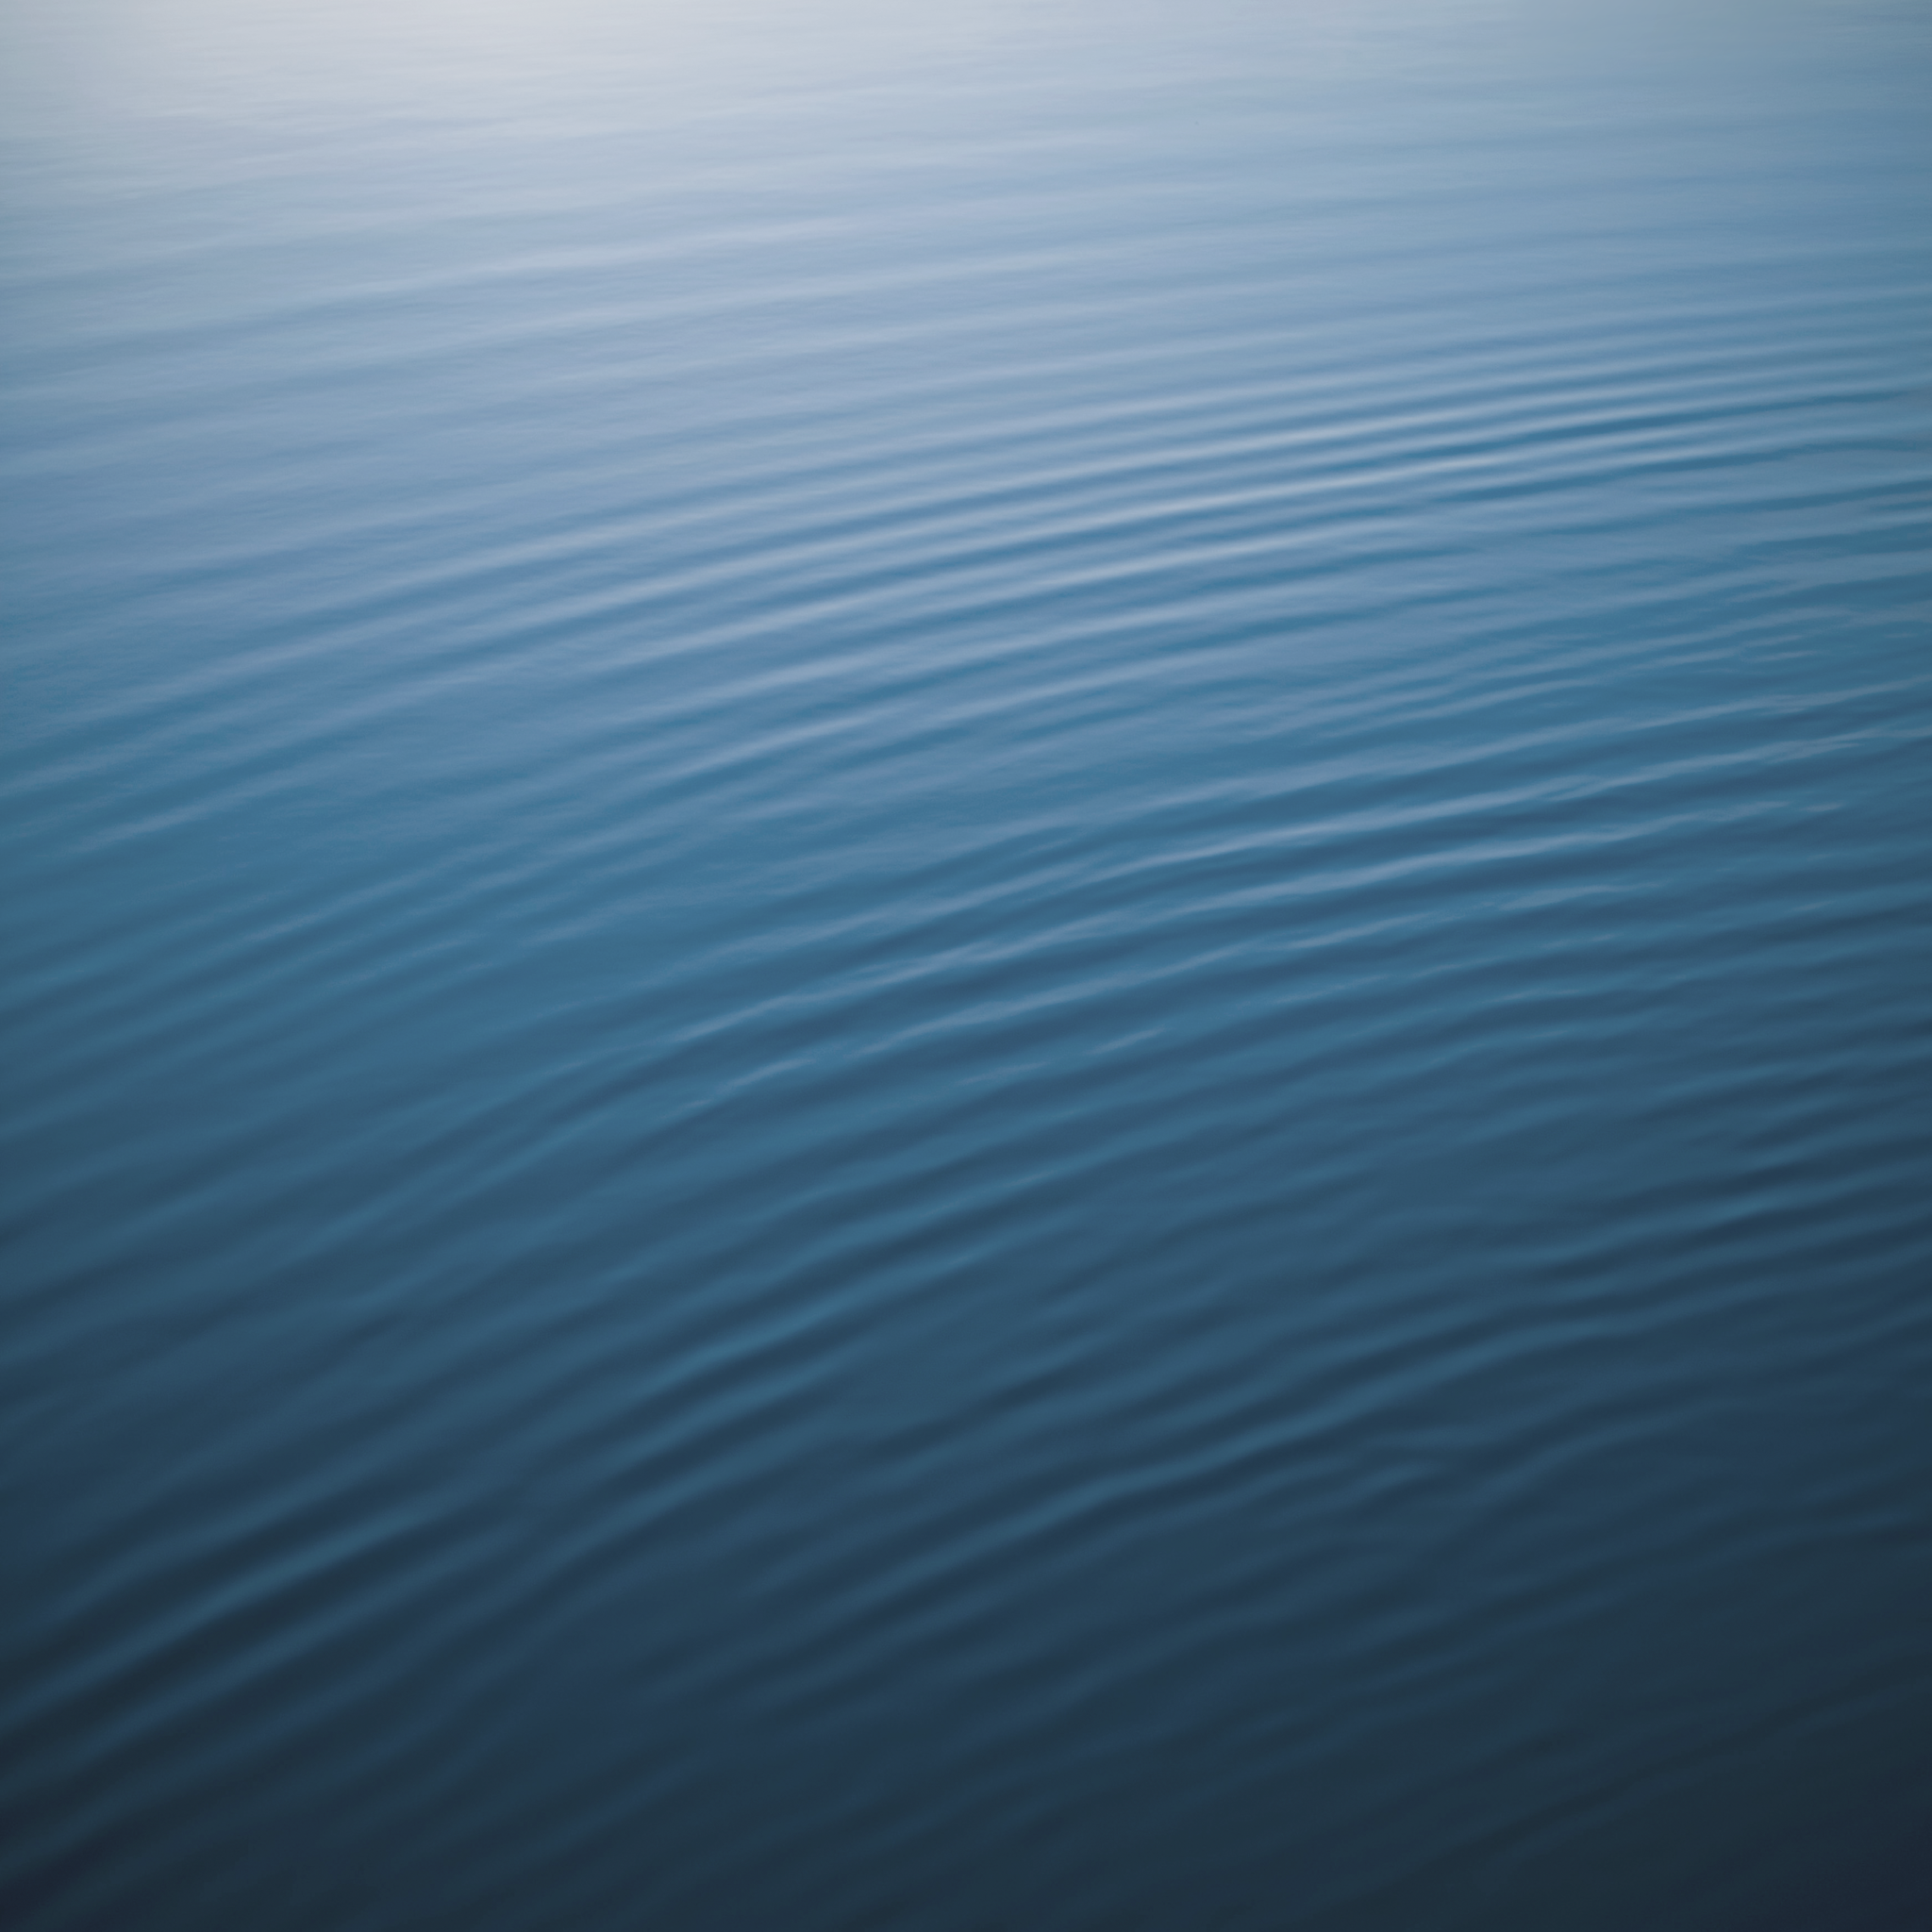 iOS 6 Get the New iOS 6 Default Wallpaper Now Rippled Water 2048x2048